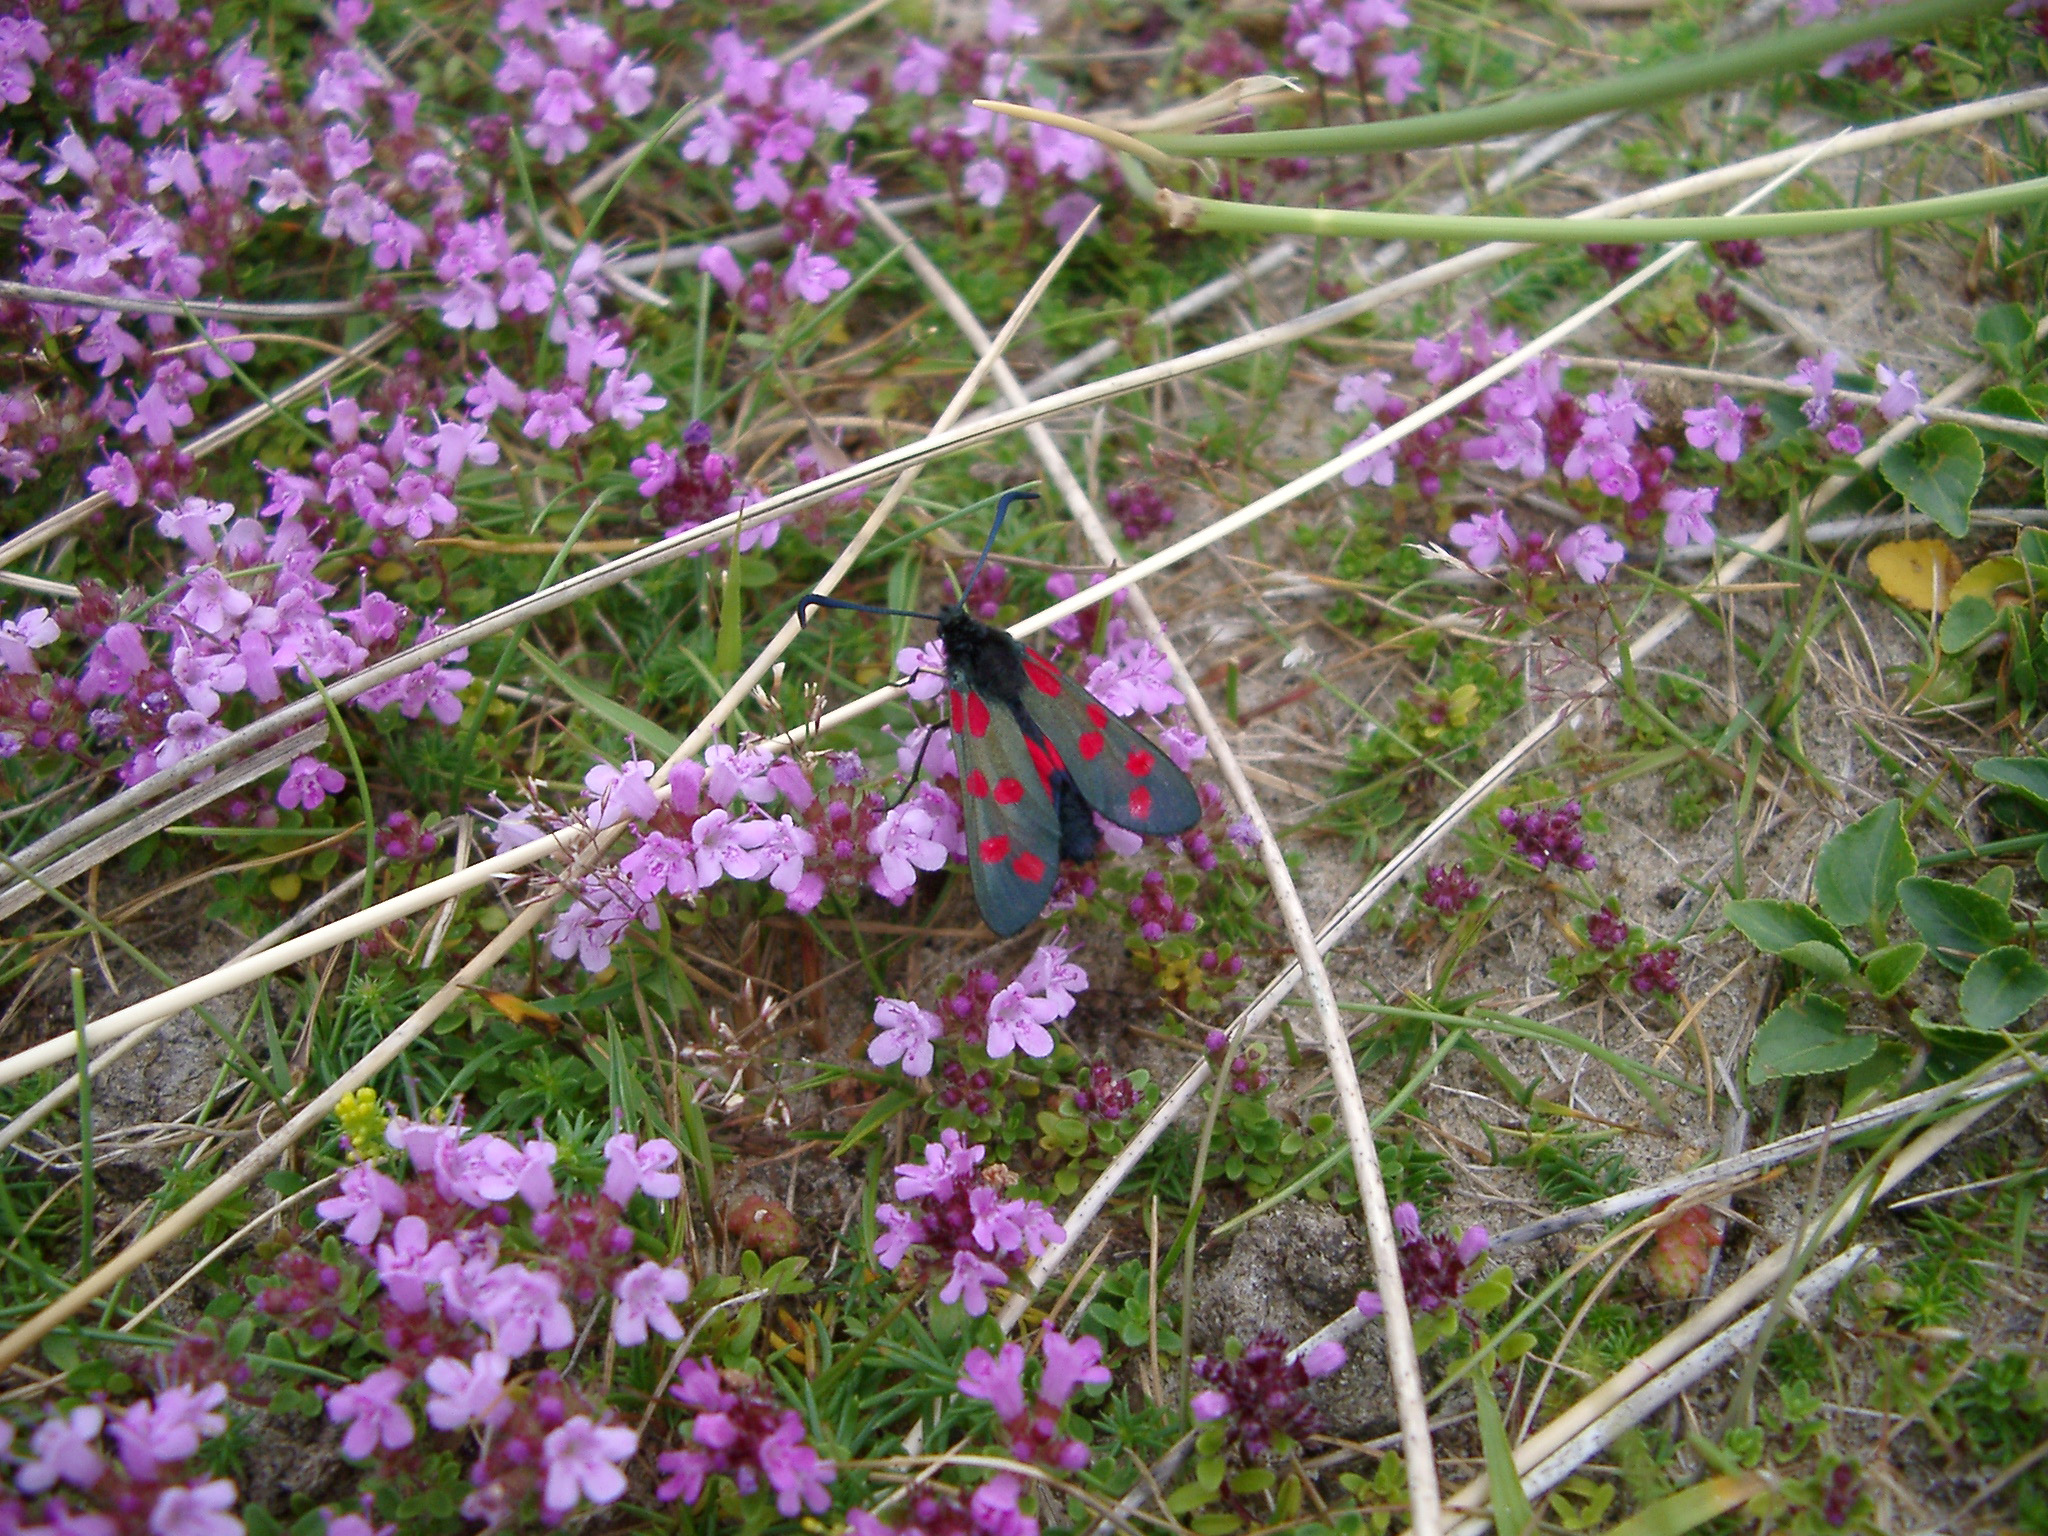 Single Butterfly Insect Resting on Pretty Small Purple Flowers Growing on the Grassy Ground.